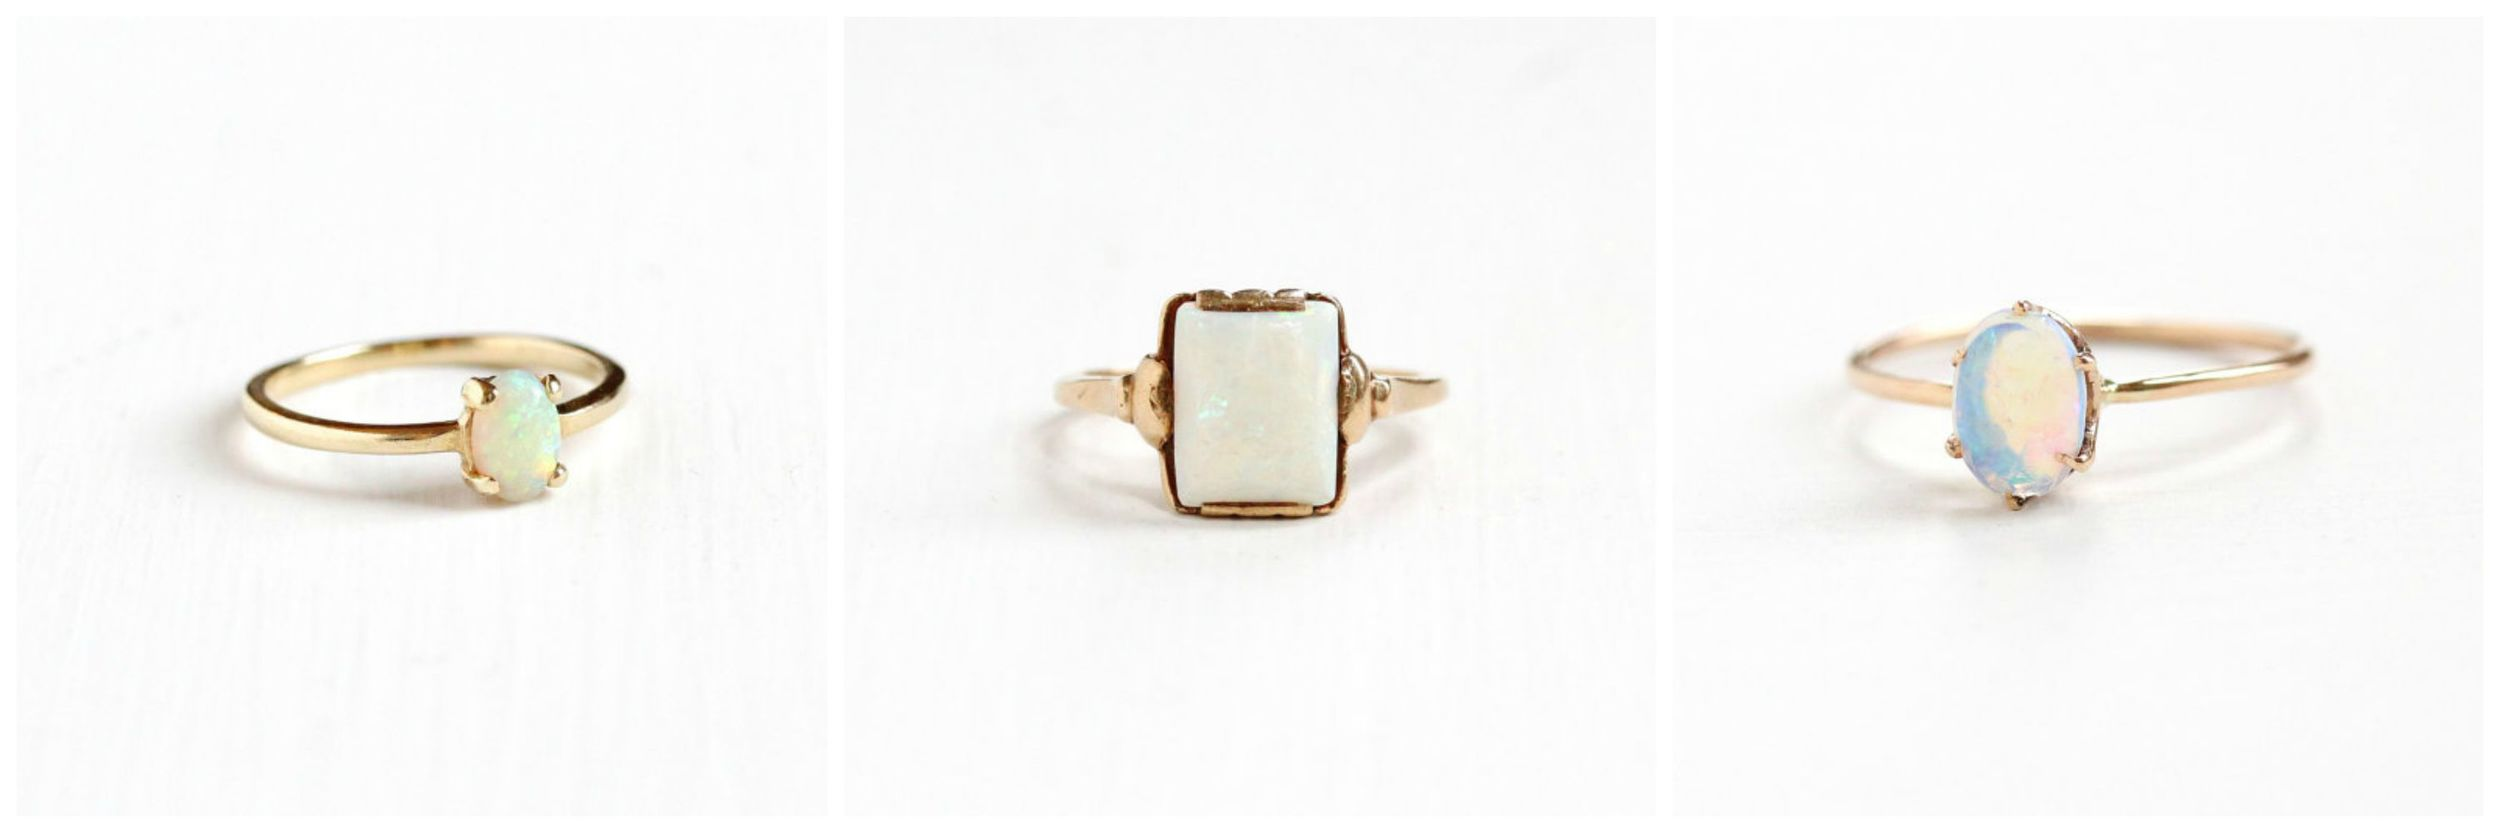 Vintage Yellow Gold Opal  Ring , Antique Yellow Gold Opal  Ring , Antique Jelly Opal  Ring